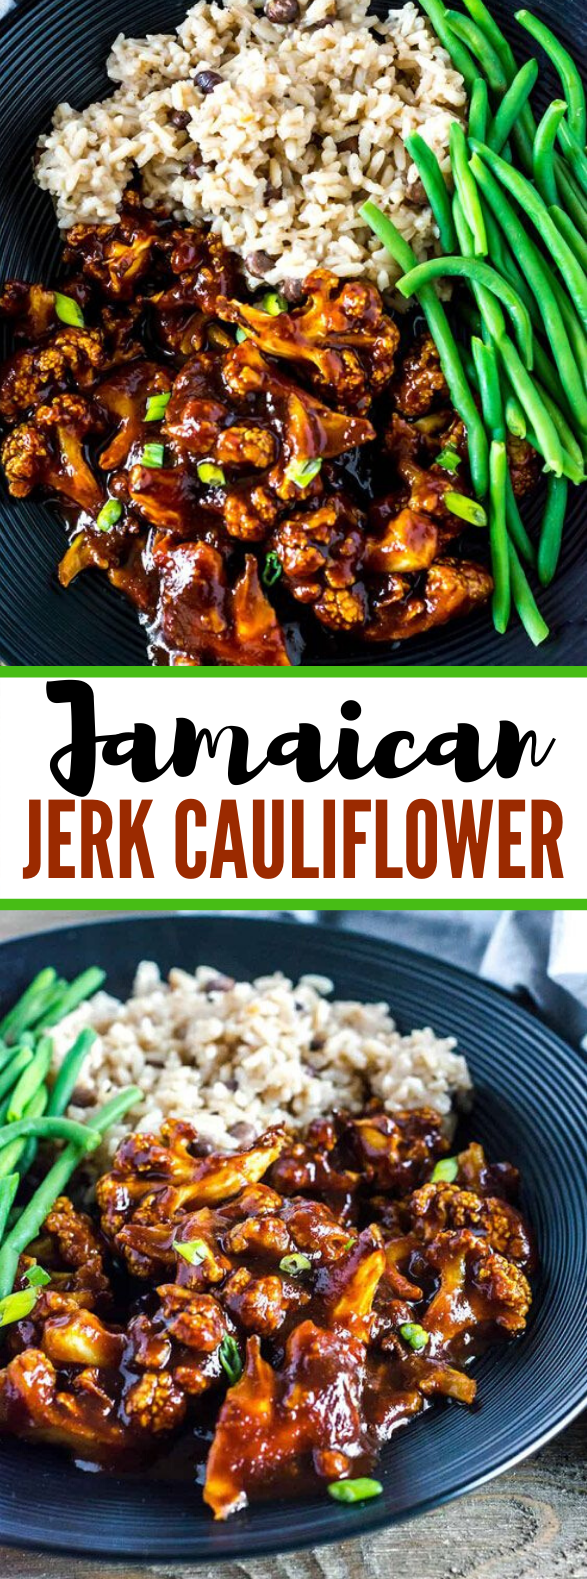 Jamaican Jerk Cauliflower #vegan #glutenfree